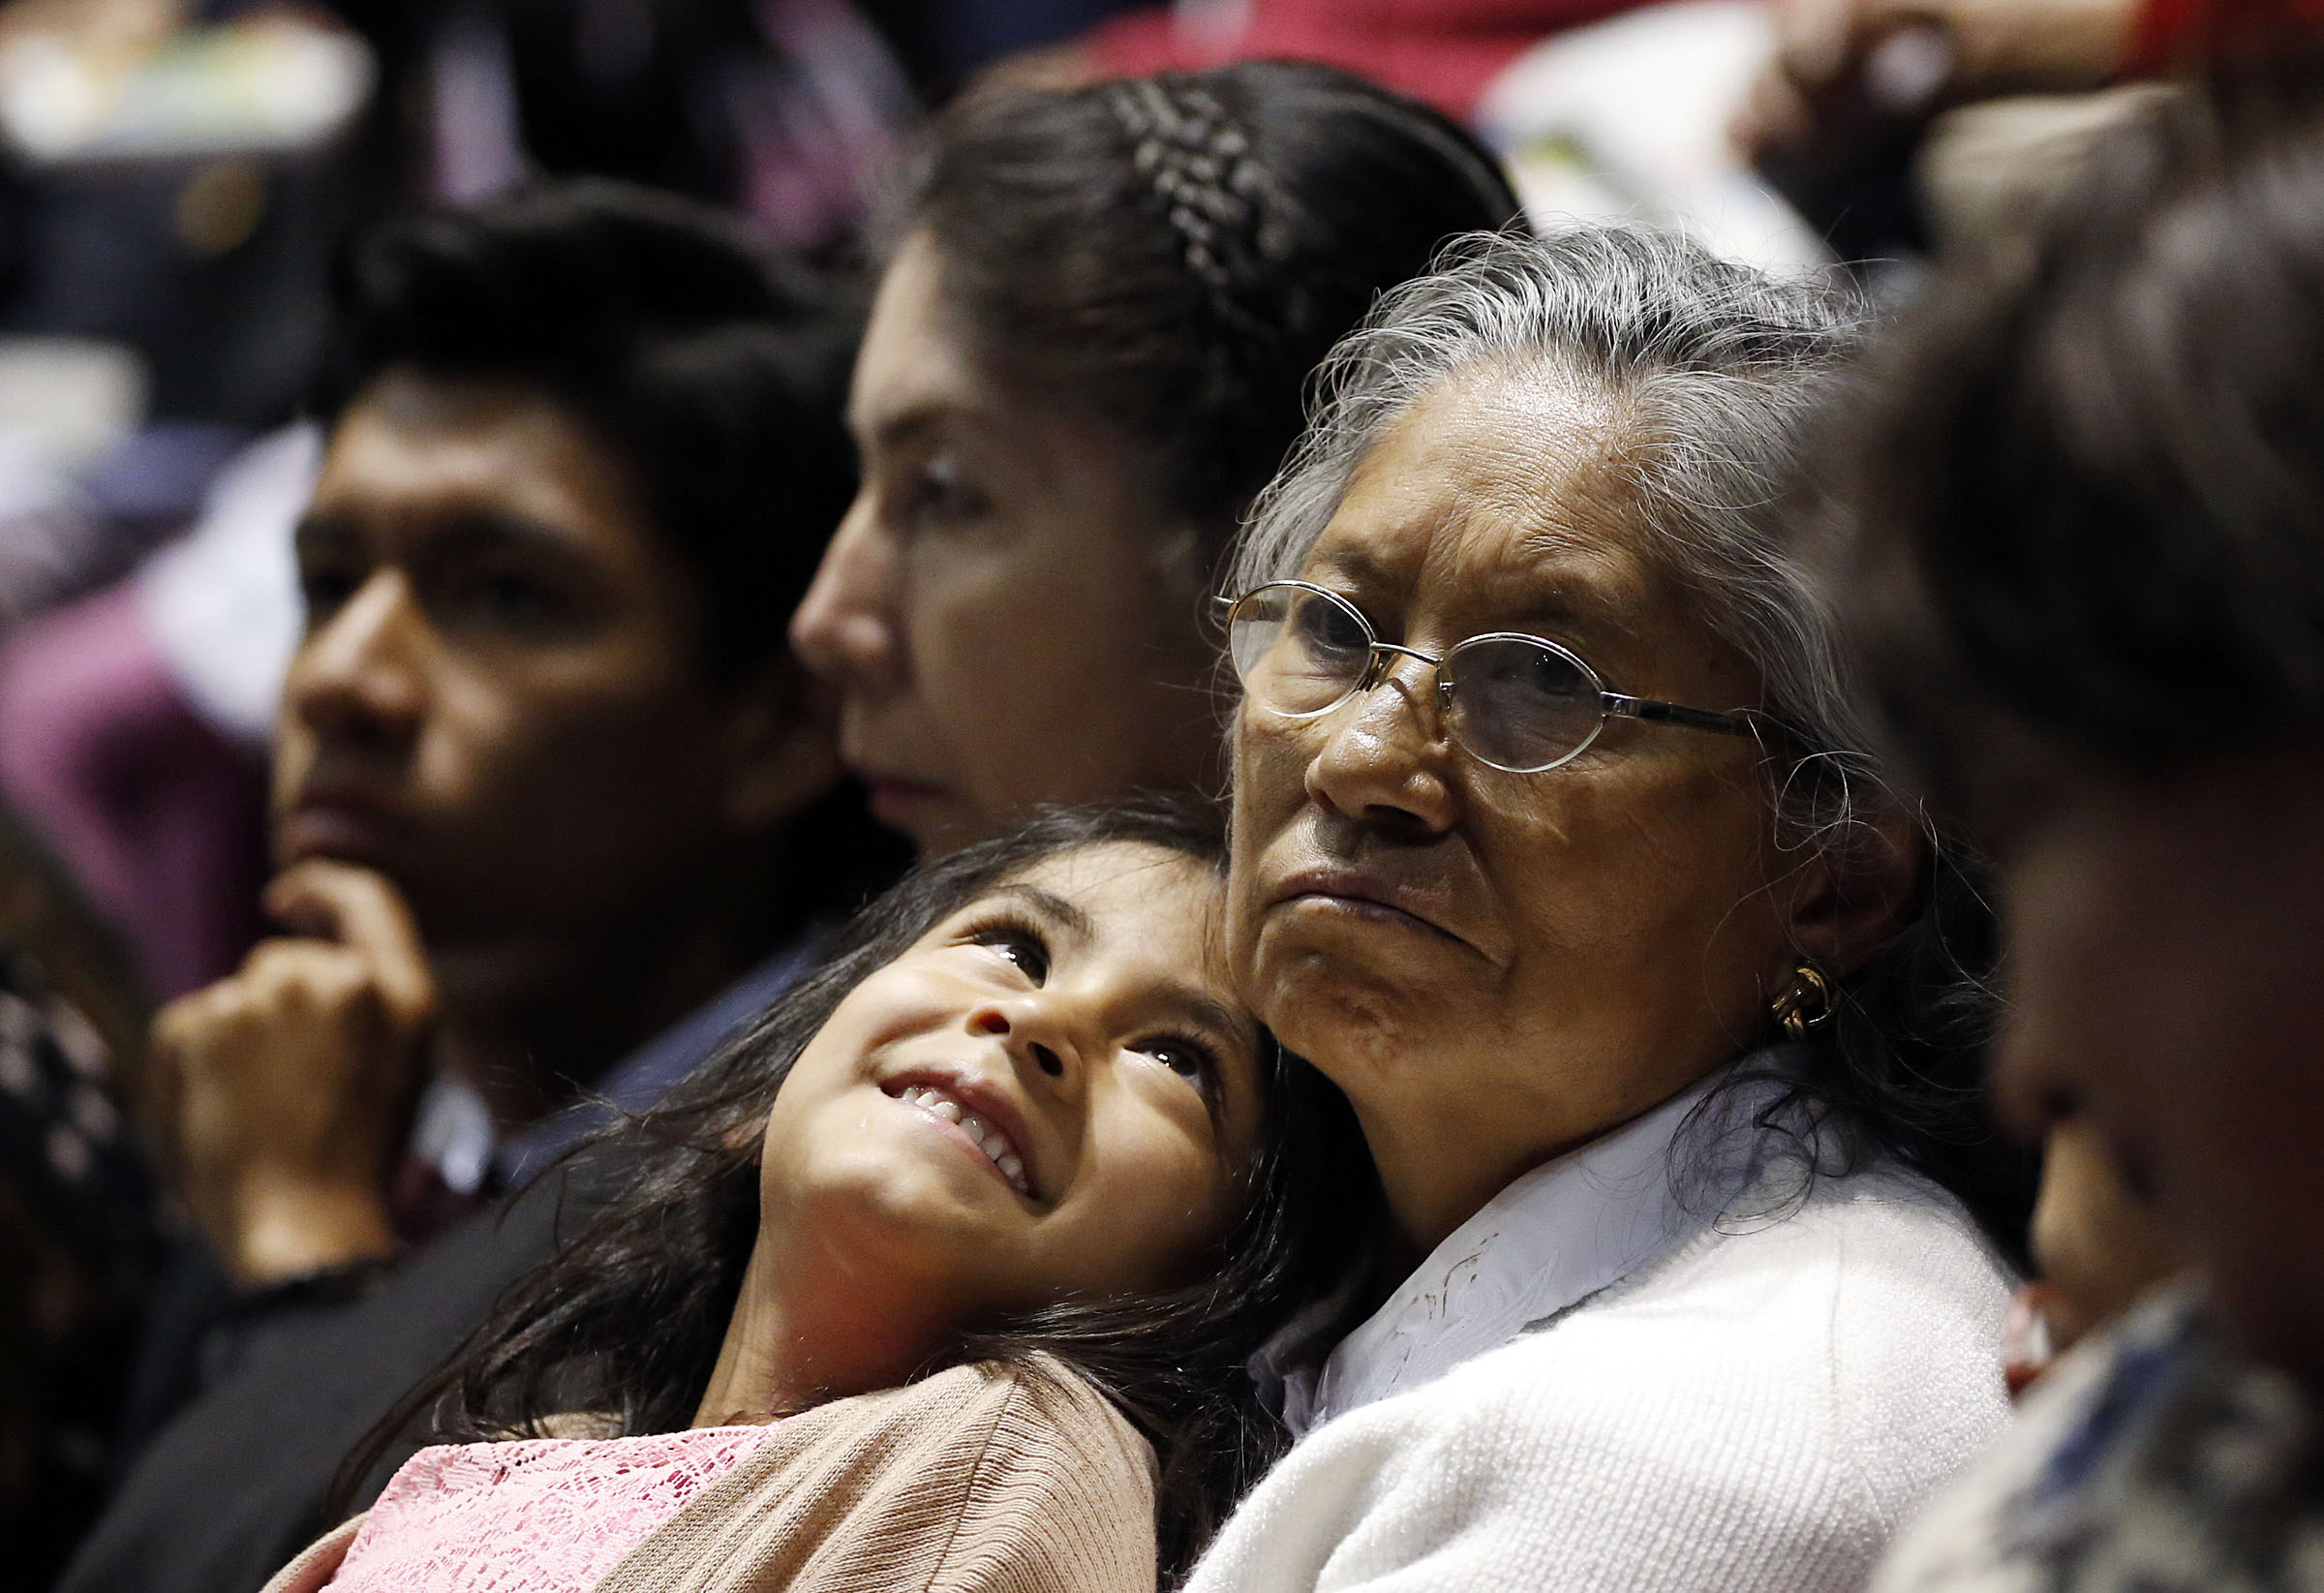 Emma Guaman holds her granddaughter, Ariana Rodriquez, during a Latin America Ministry Tour devotional in Quito, Ecuador, on Monday, Aug. 26, 2019.